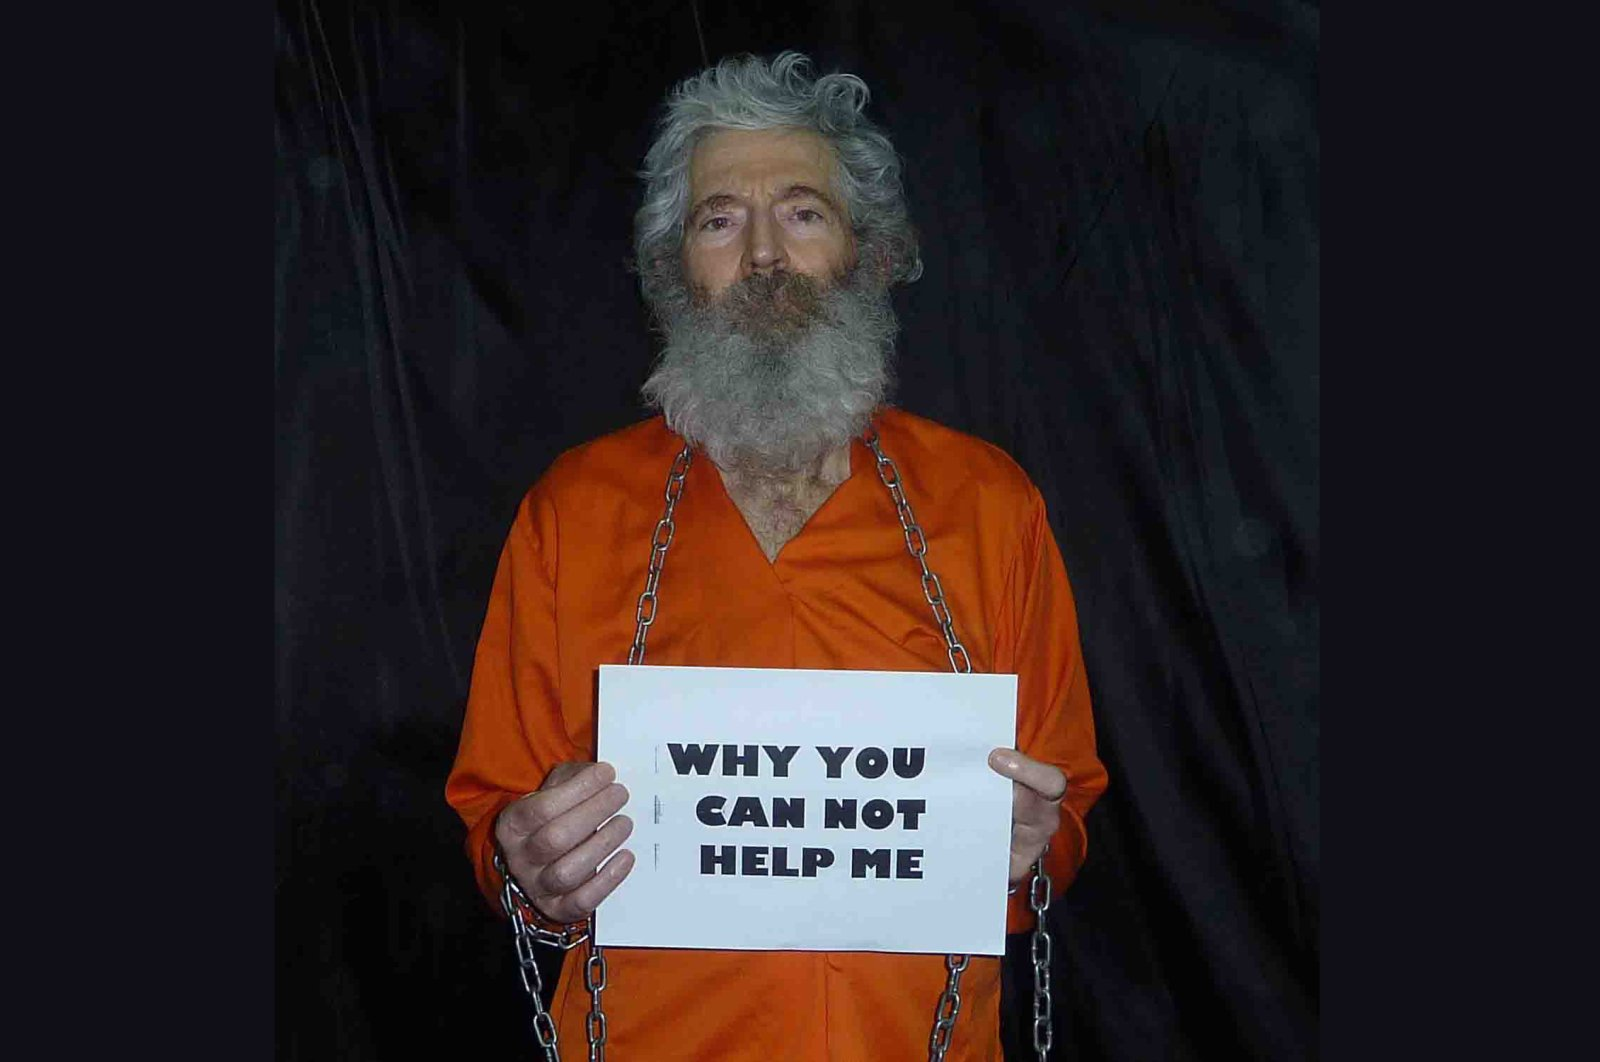 This undated handout photo provided by the family of Robert Levinson, shows retired-FBI agent Robert Levinson in a photo the family received in April 2011. (AP Photo)